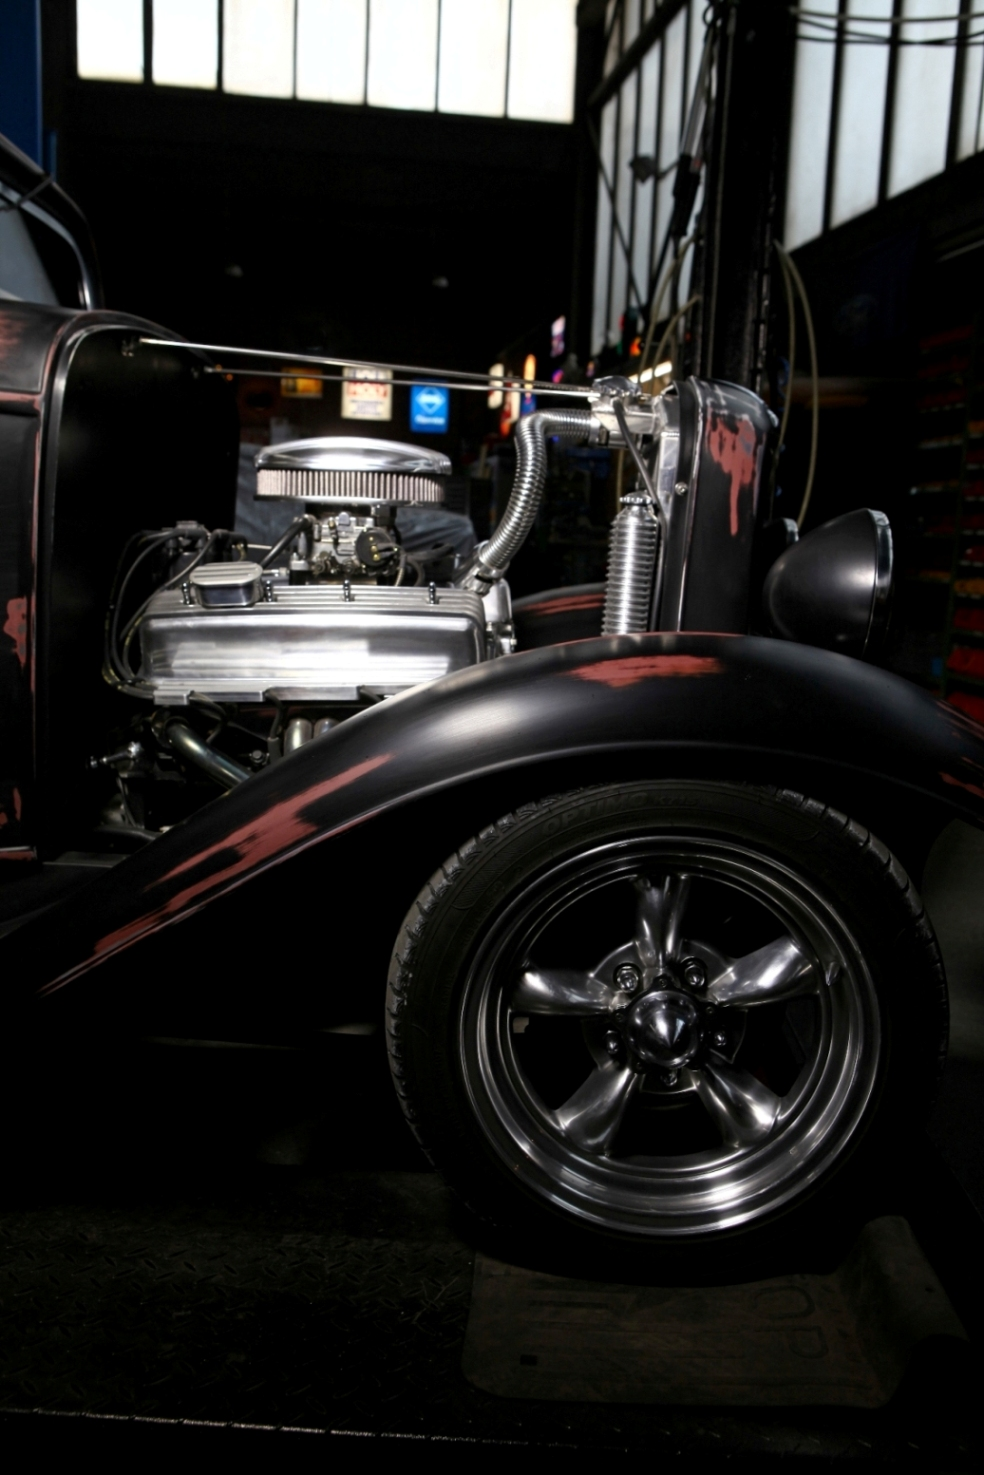 3.Ford.Rod.1932.cooleparts